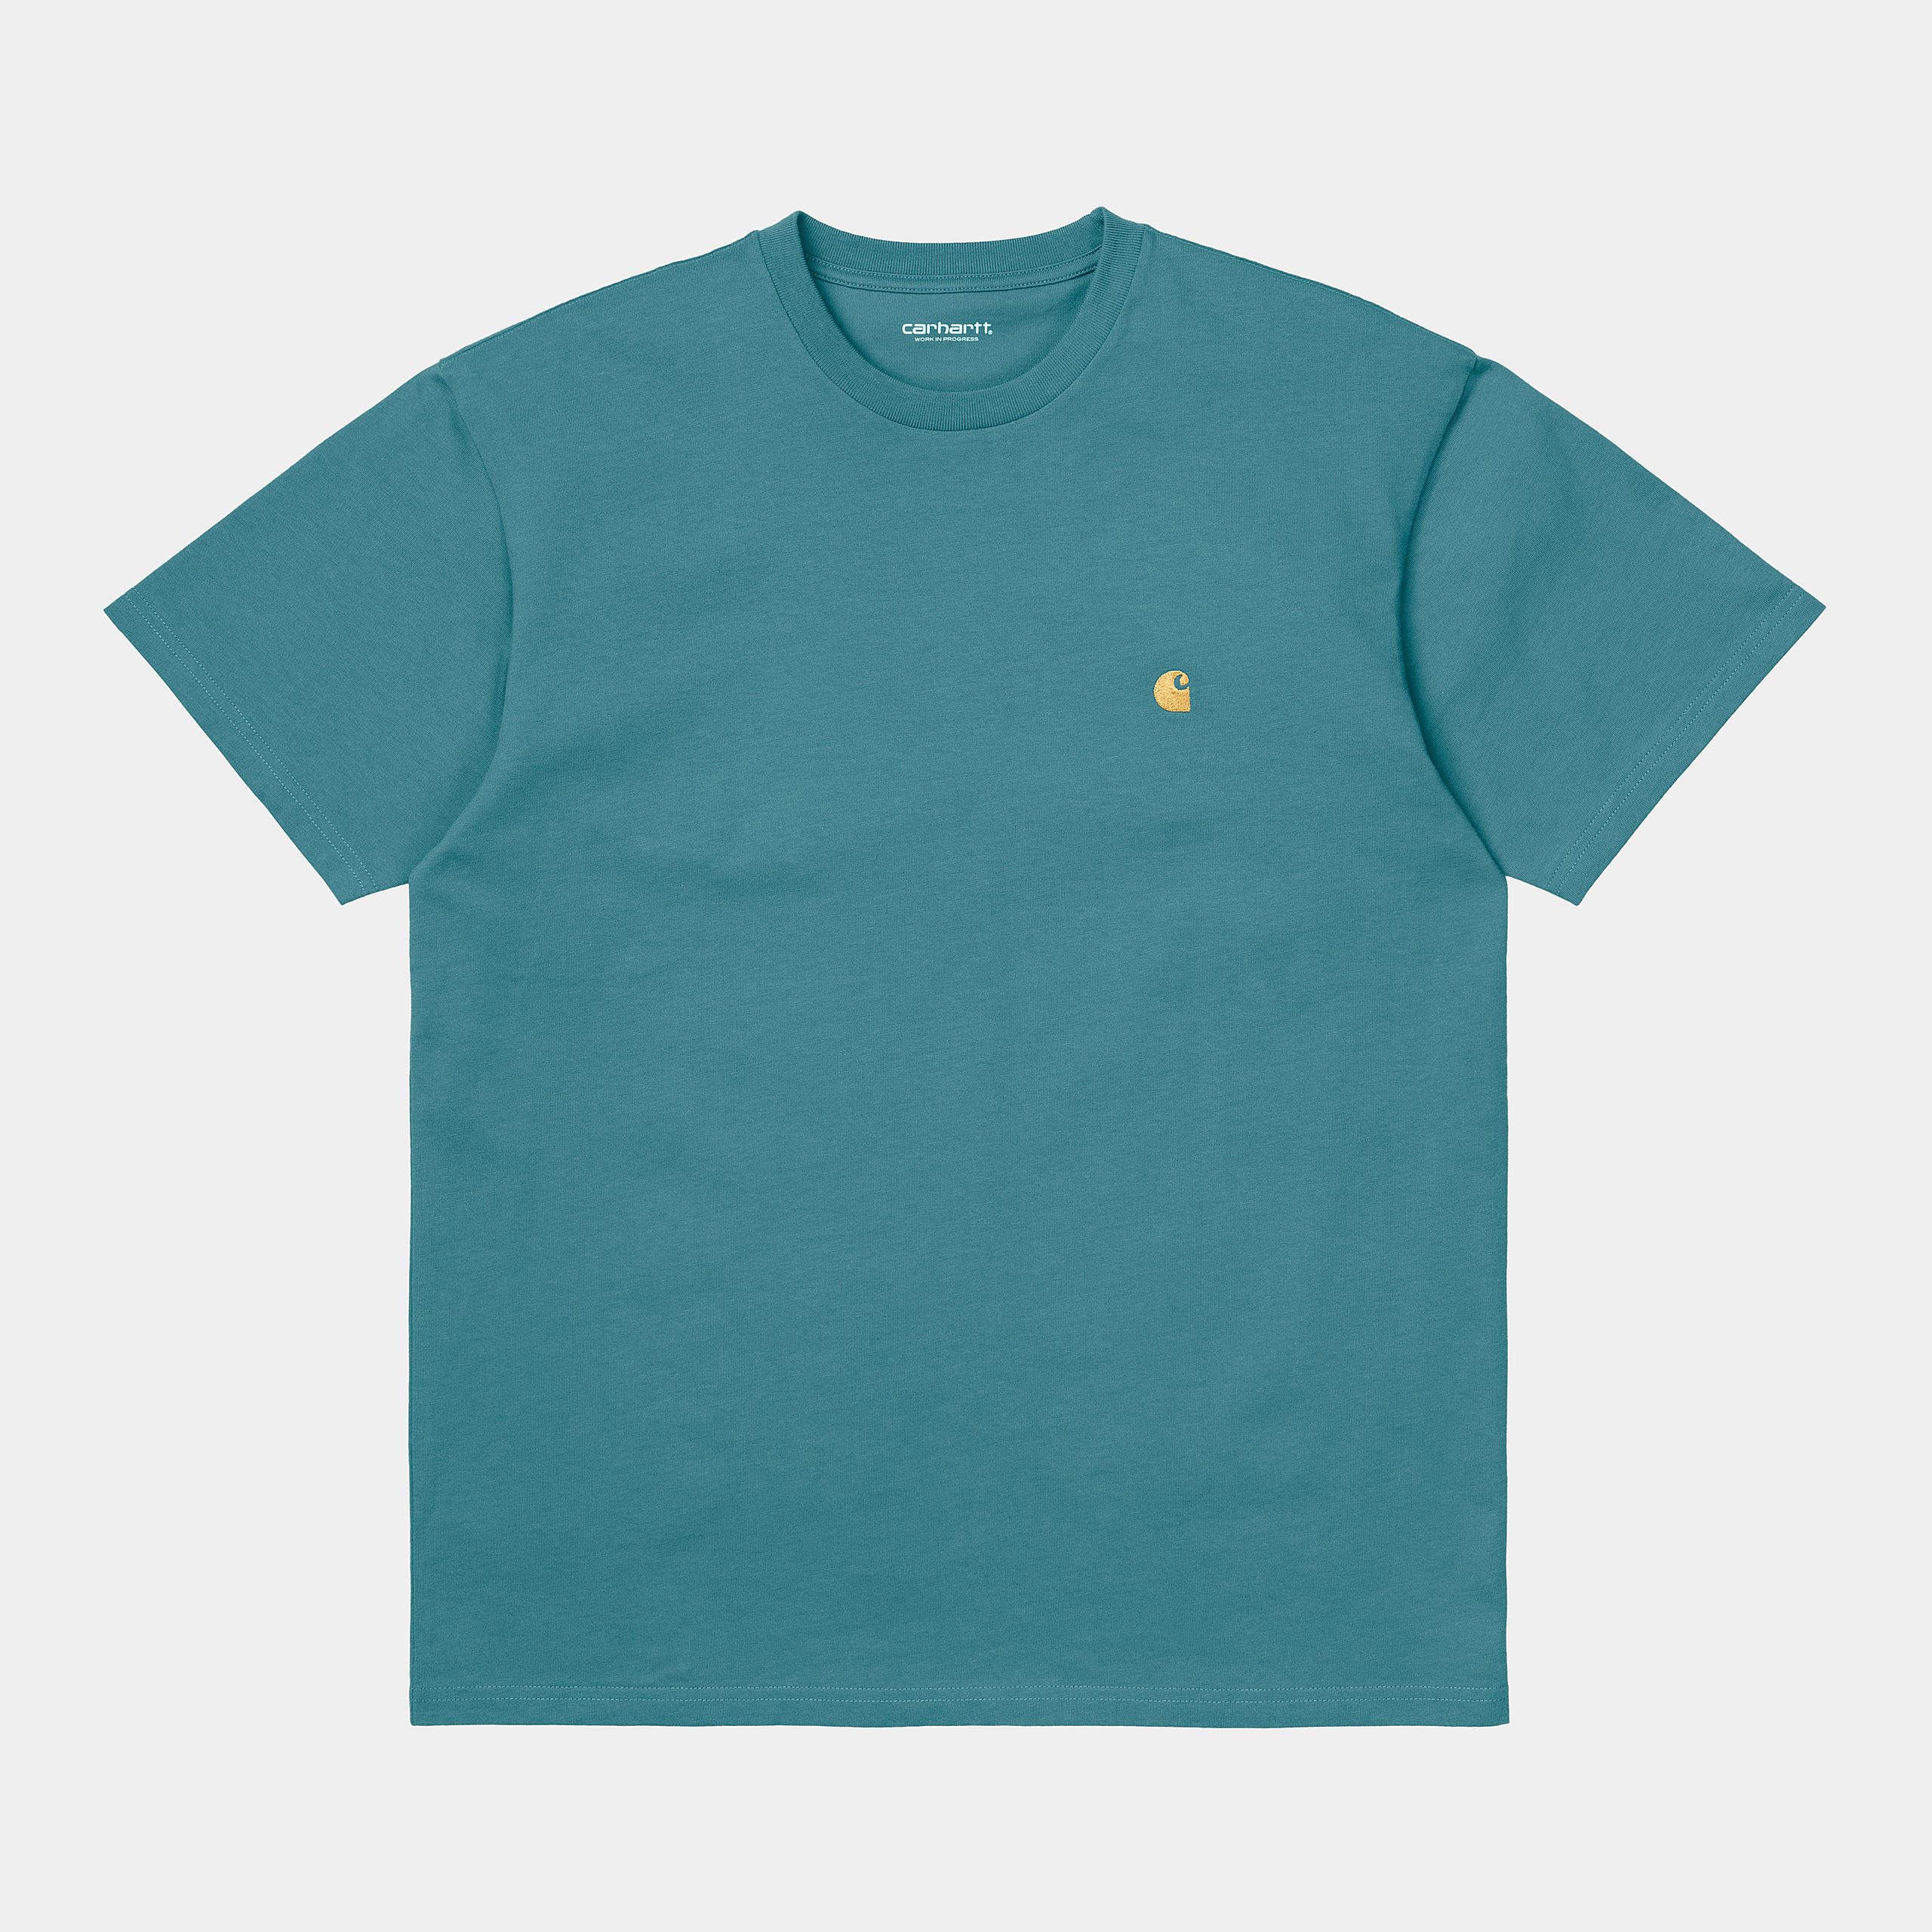 Carhartt WIP - CHASE T-SHIRT - Hydro/Gold